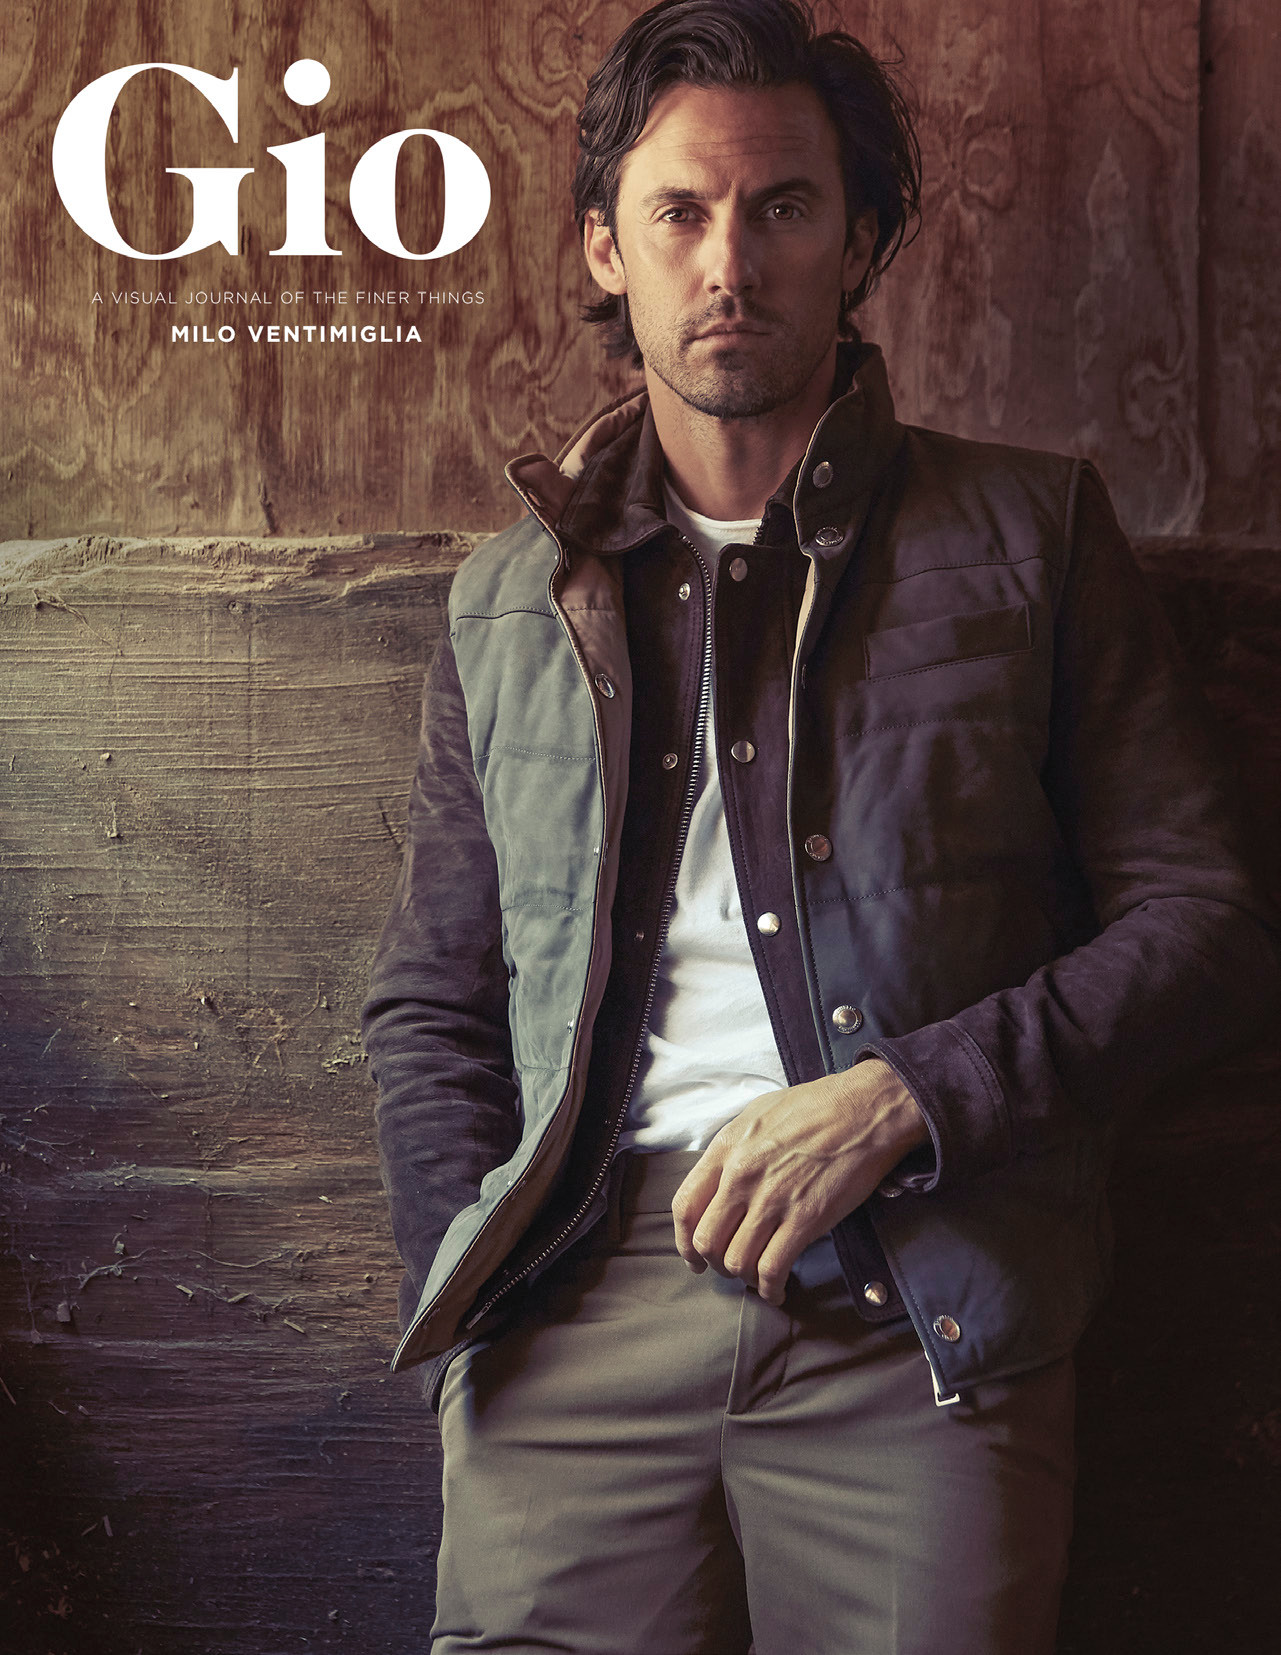 Gio Journal Article Cover.jpg